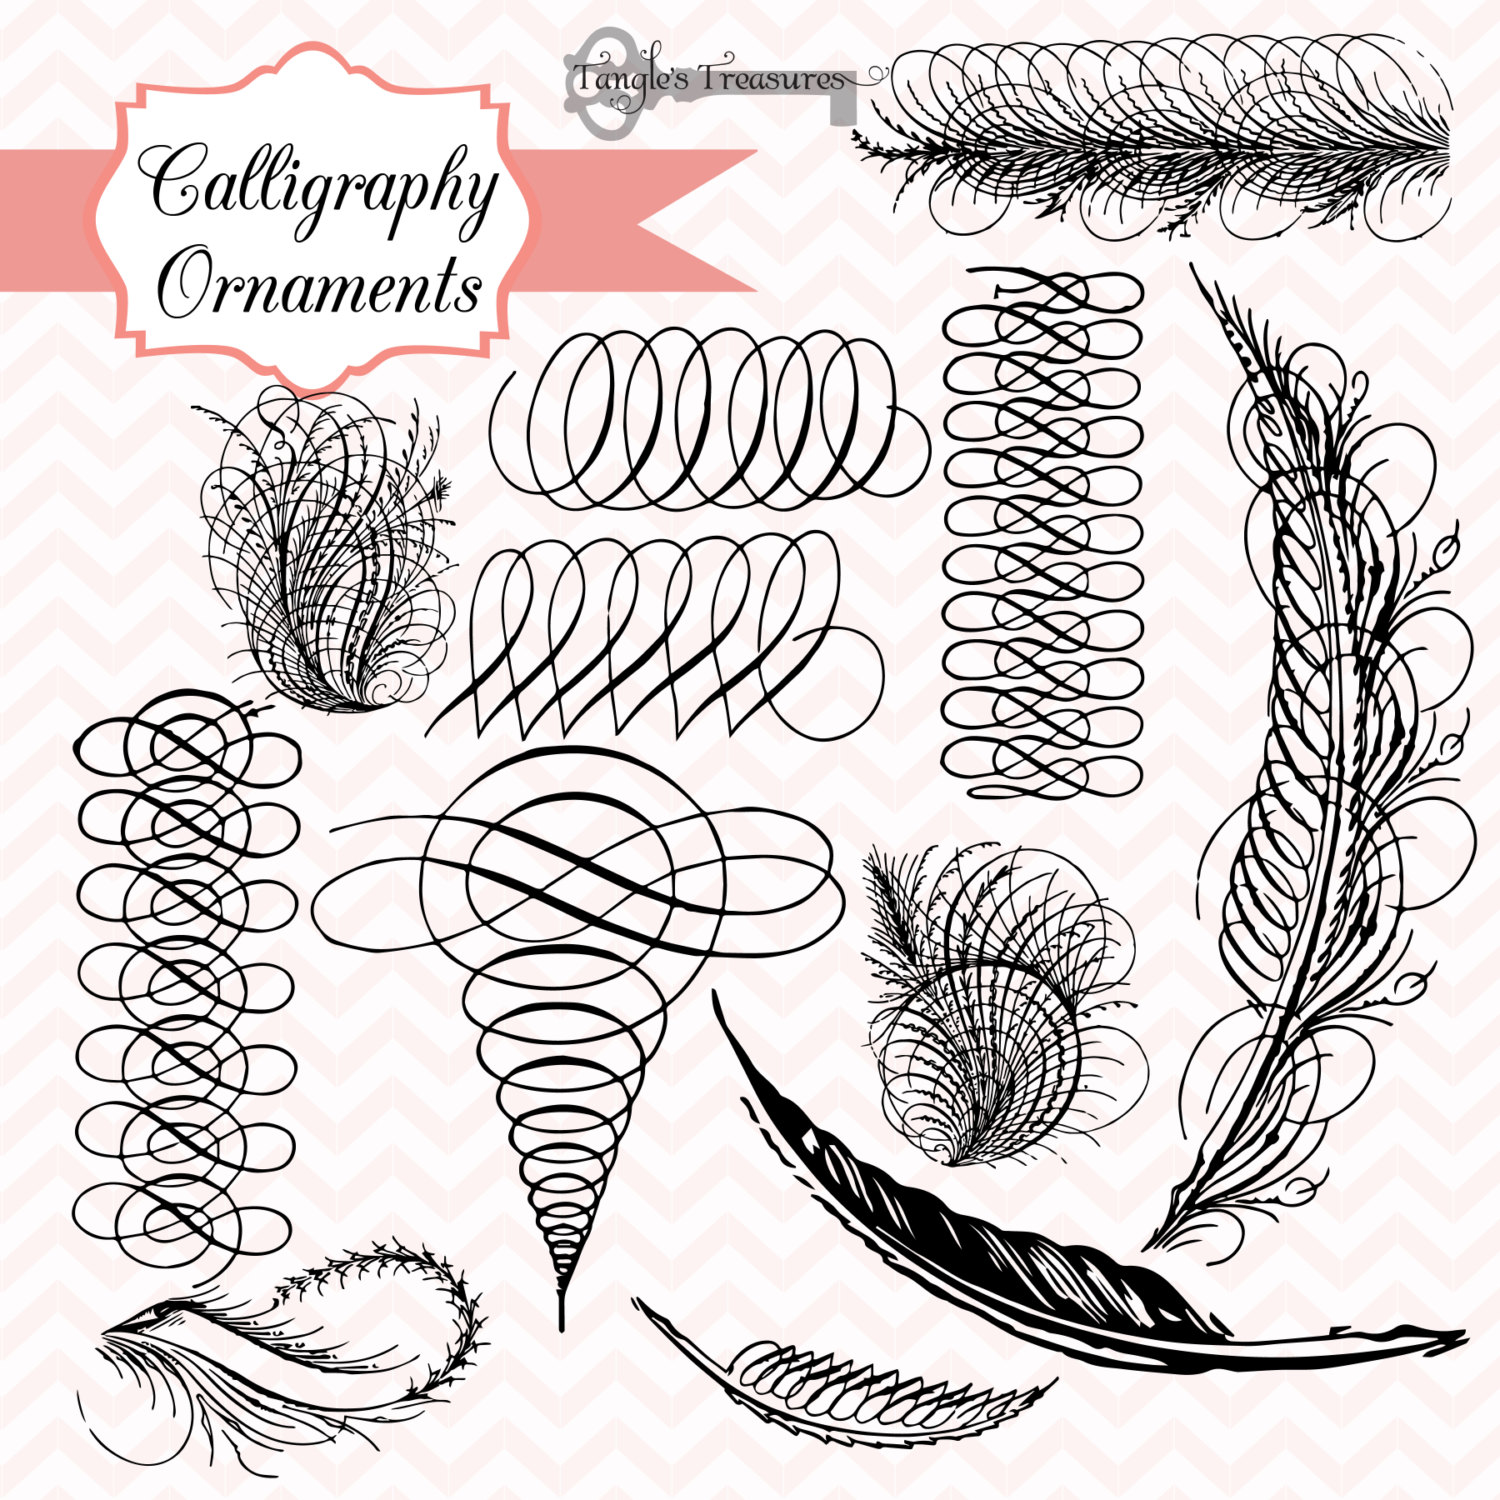 11 Vintage Calligraphic Ornaments Images